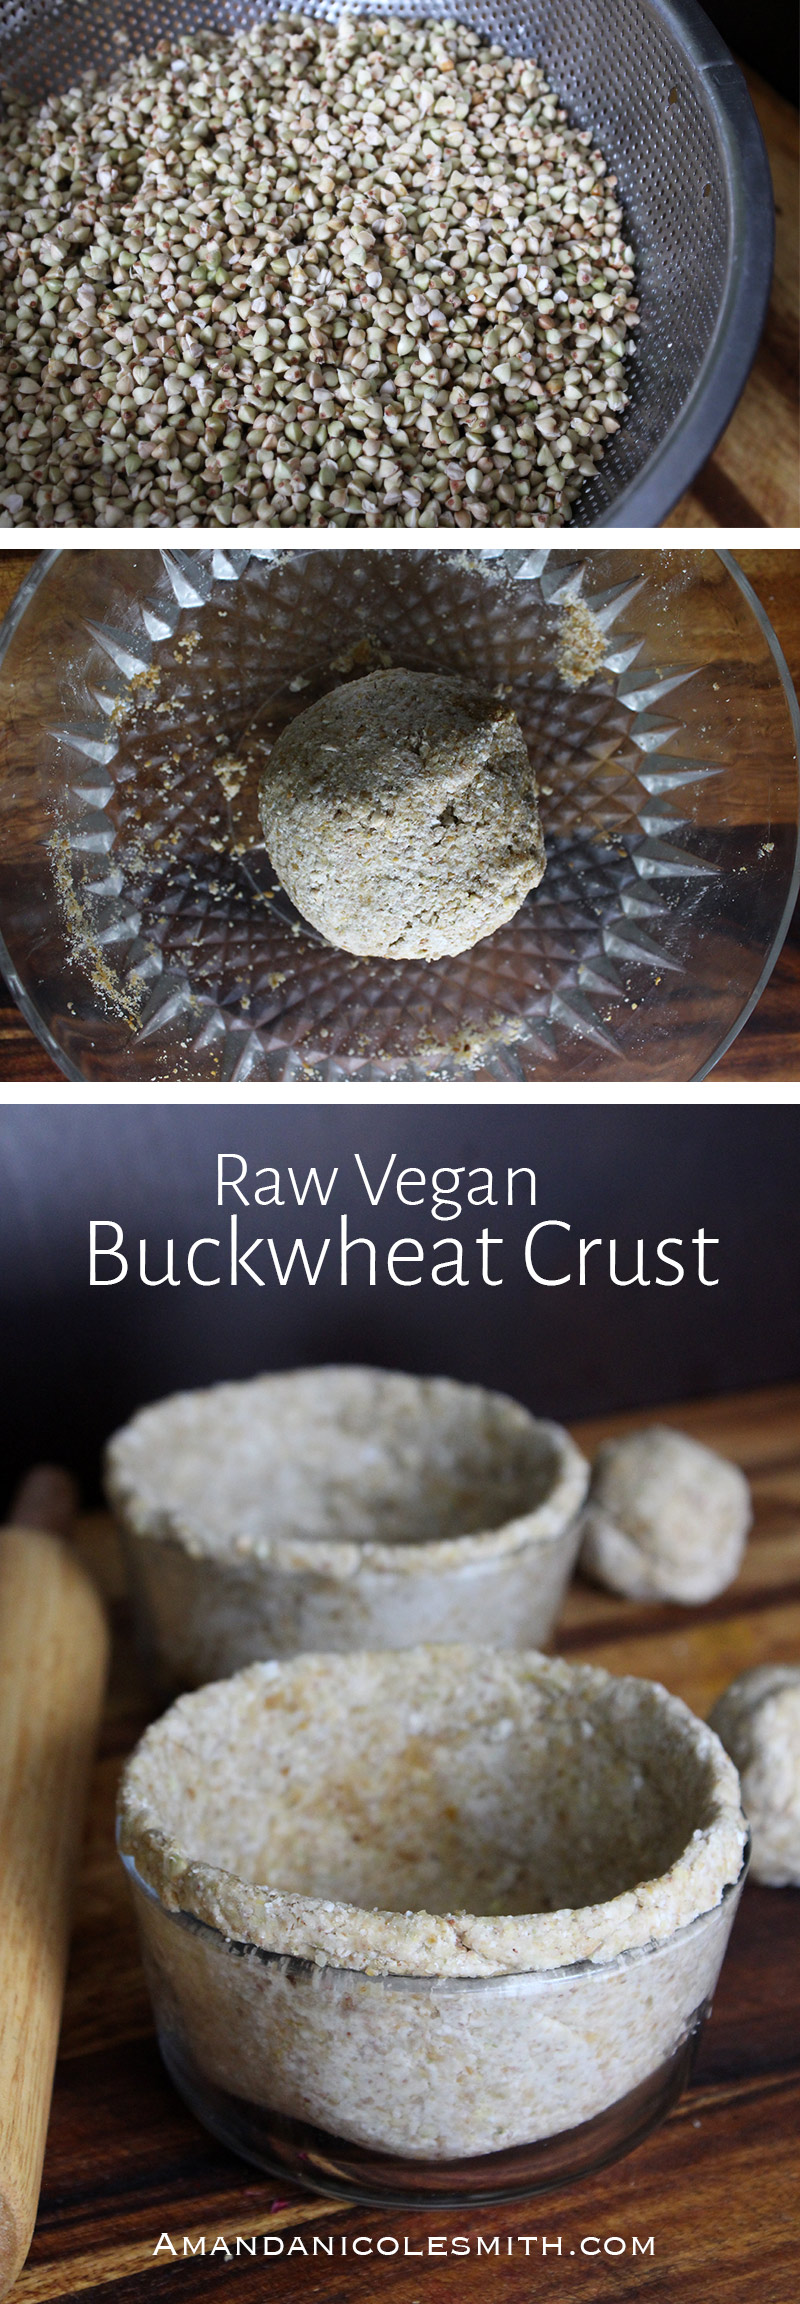 raw-vegan-buckwheat-crust